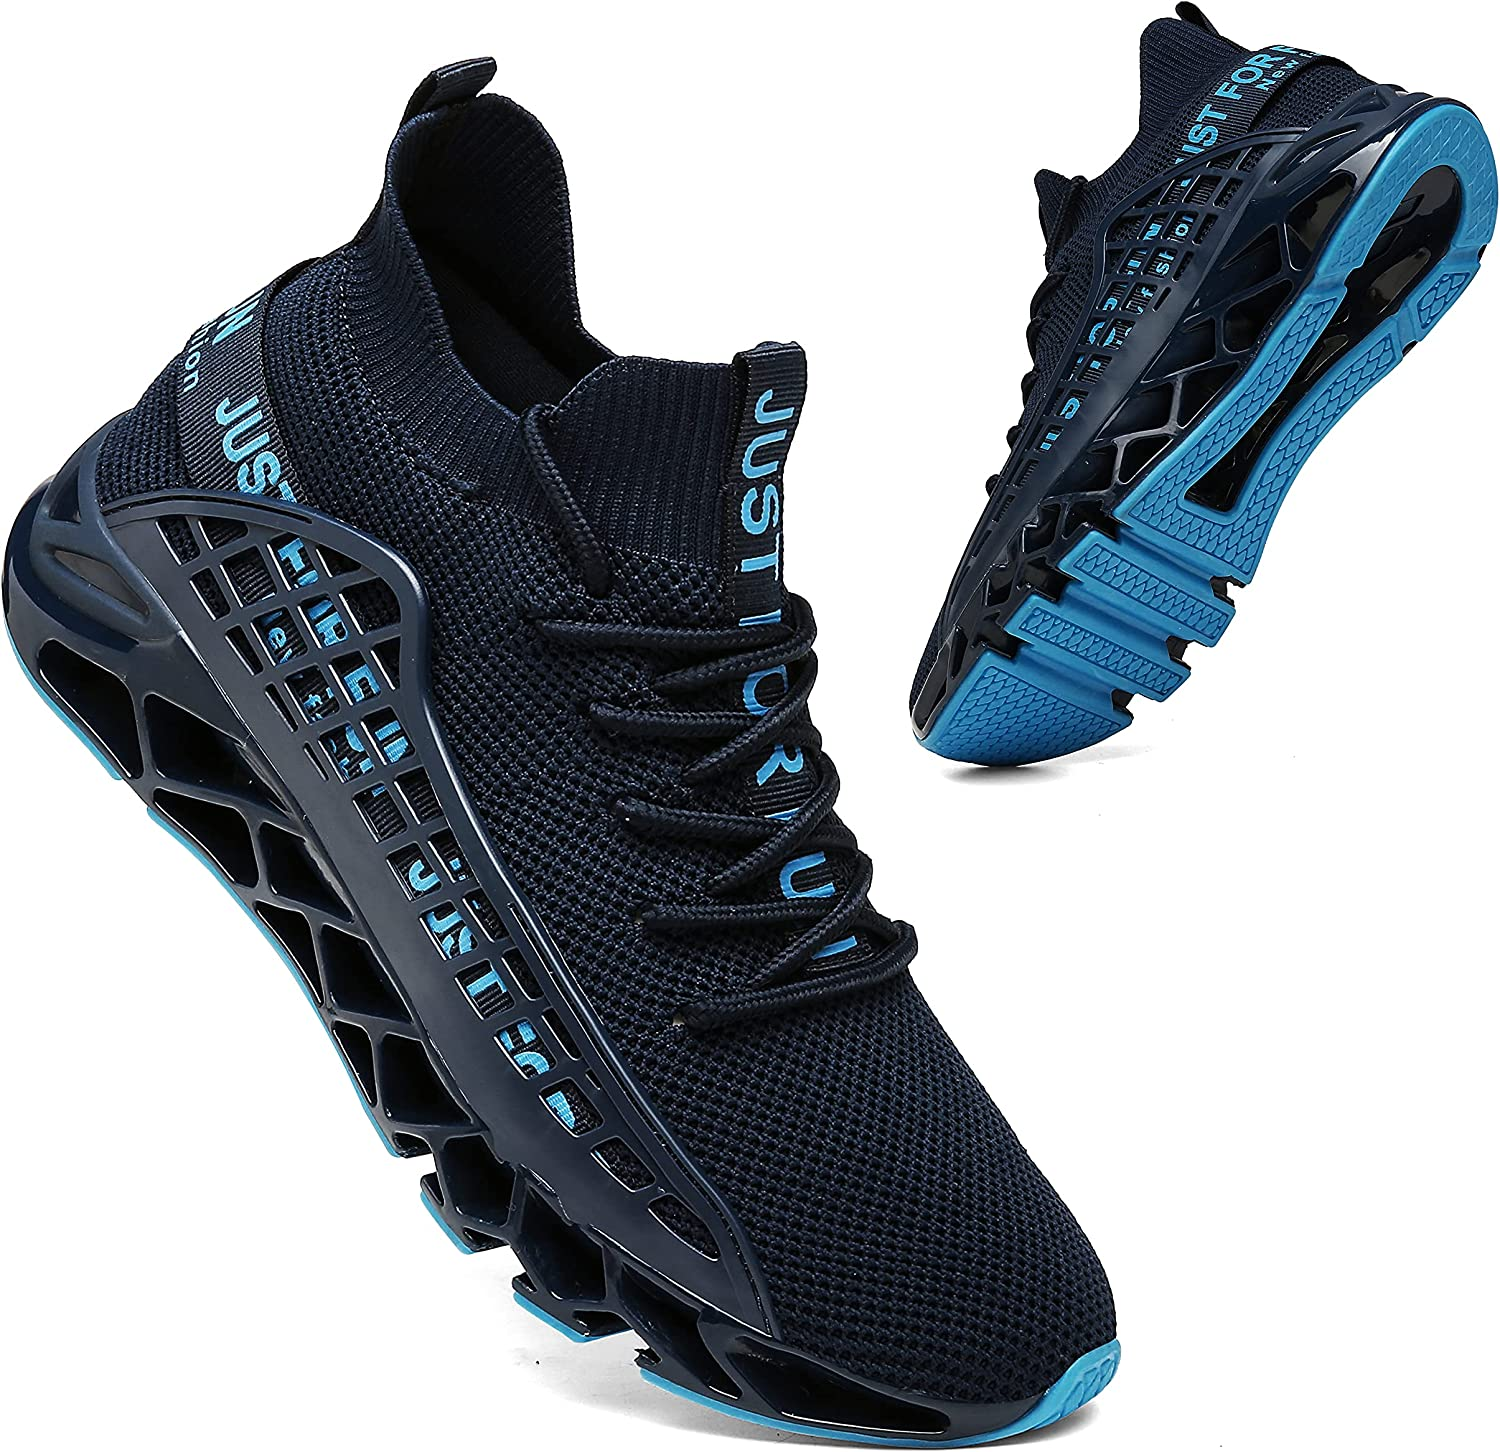 Arlington Mall KUXIE Mens Running Shoes Athletic Fashion Casual Cash special price S Walking